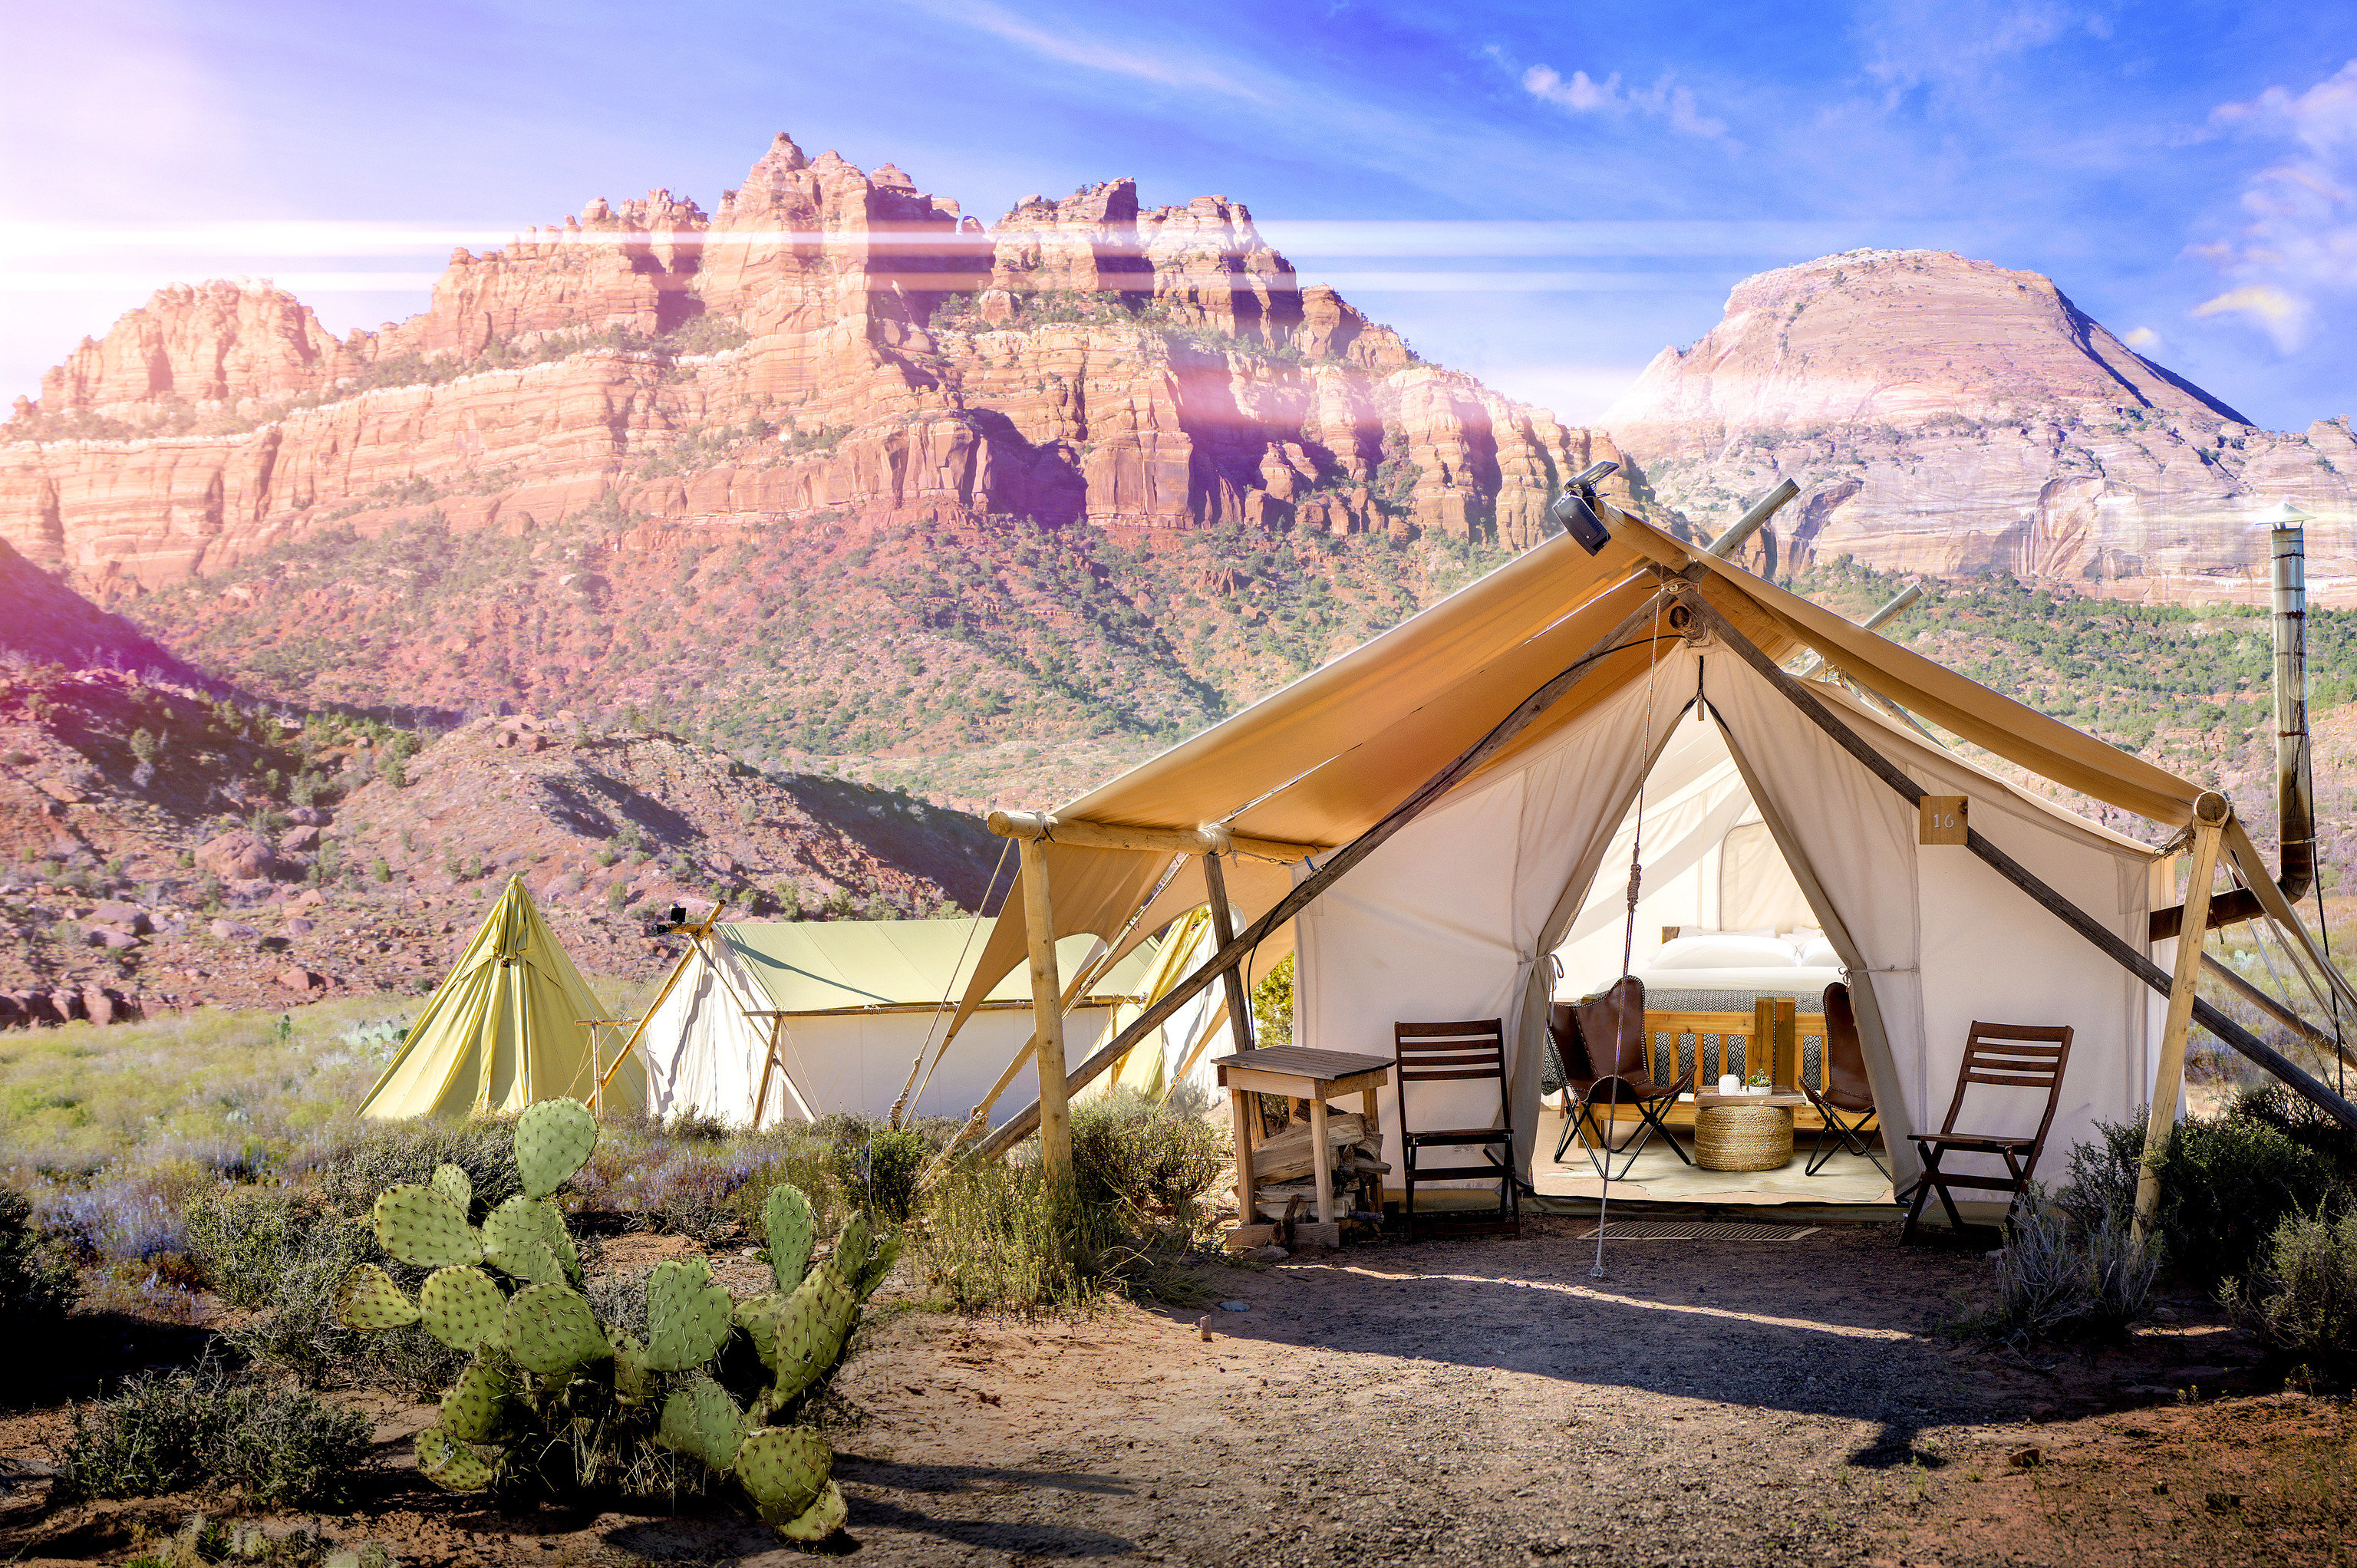 Glamping Hotels Luxury Travel Offbeat Outdoors + Adventure Trip Ideas mountain outdoor sky ground mountainous landforms Town vacation tourism Village mountain range Desert tent landscape valley estate flower dirt